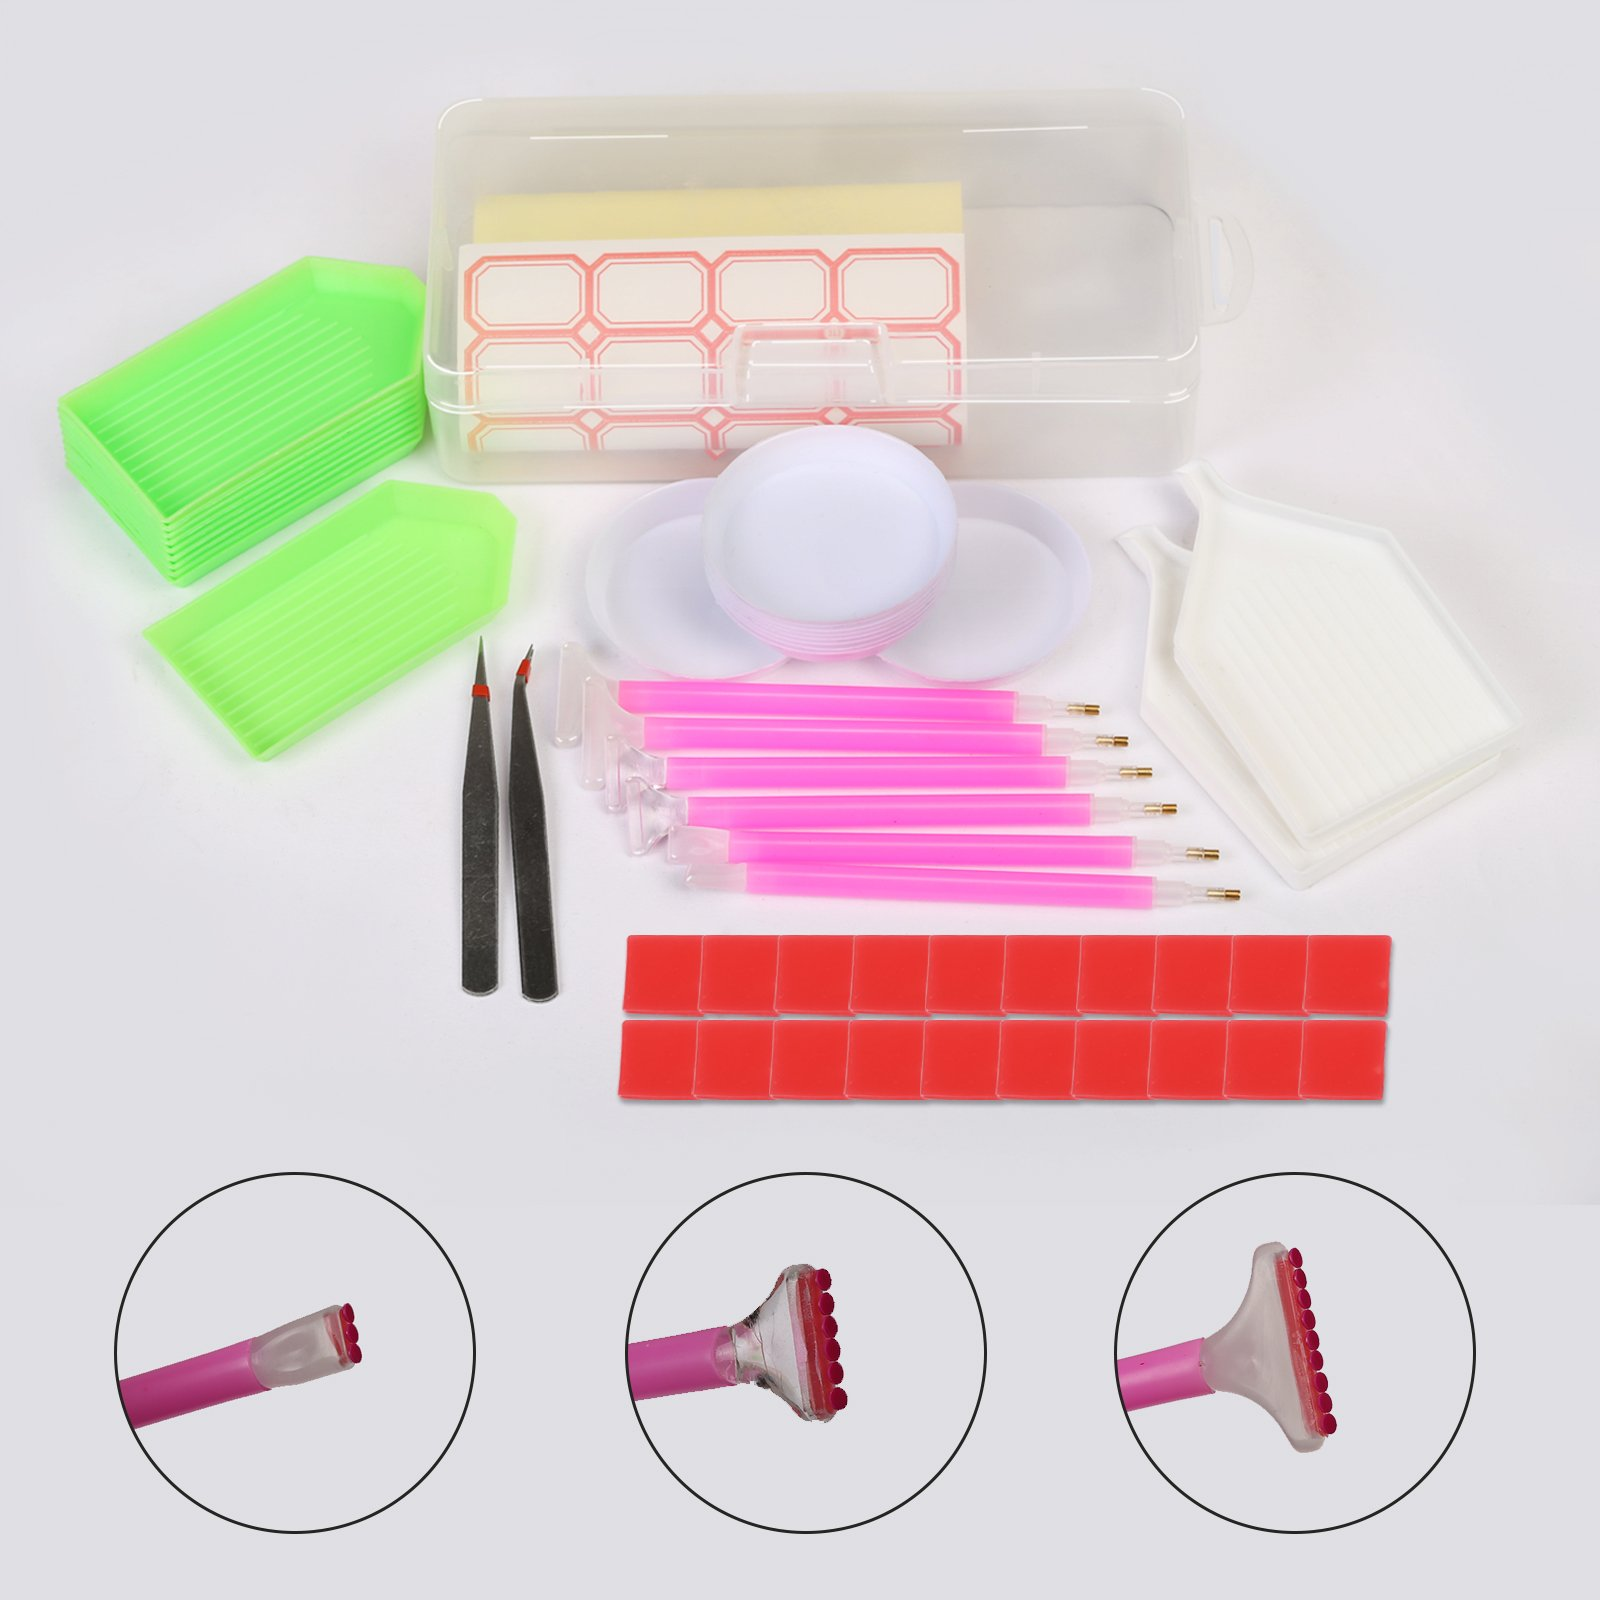 Diamond Painting Kit SEELOK 111 Pcs DIY Cross Stitch Tools Set Embroidery Sewing Accessories with Quick Point Pen,Glue,Plastic Tray,Tweezers,Bags and Storage Box for Adult or Kids